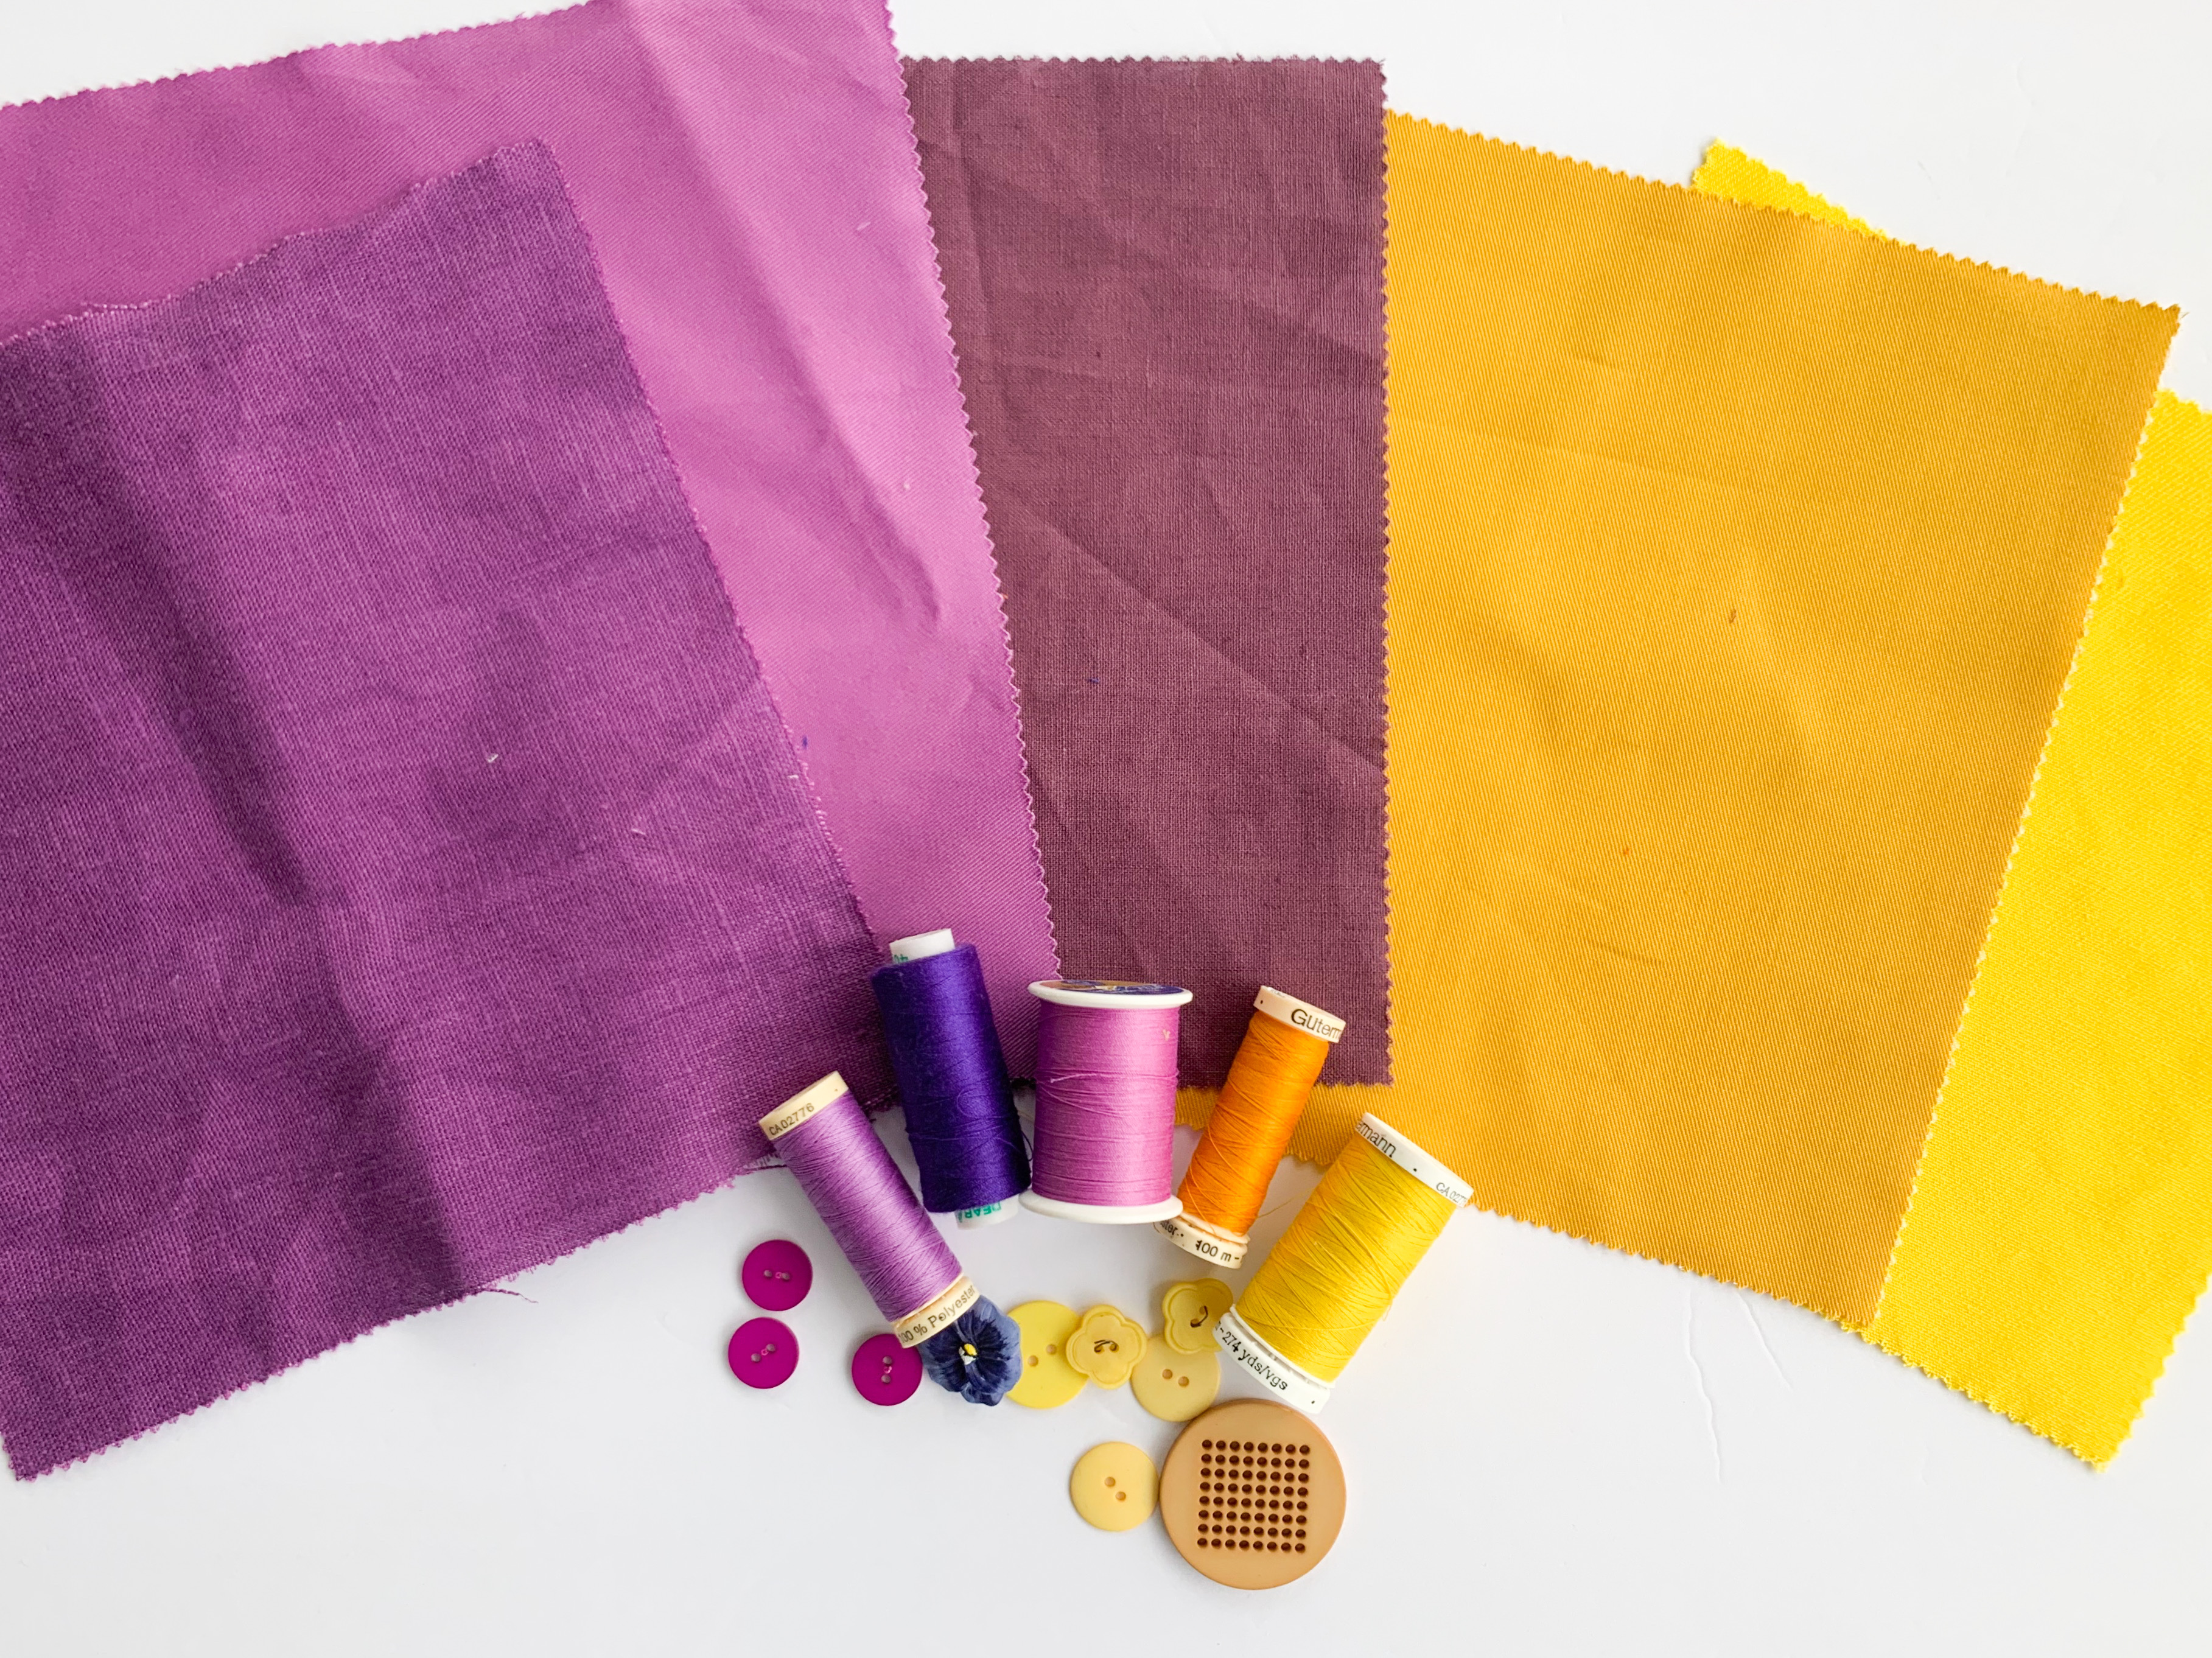 yellow and violet fabrics